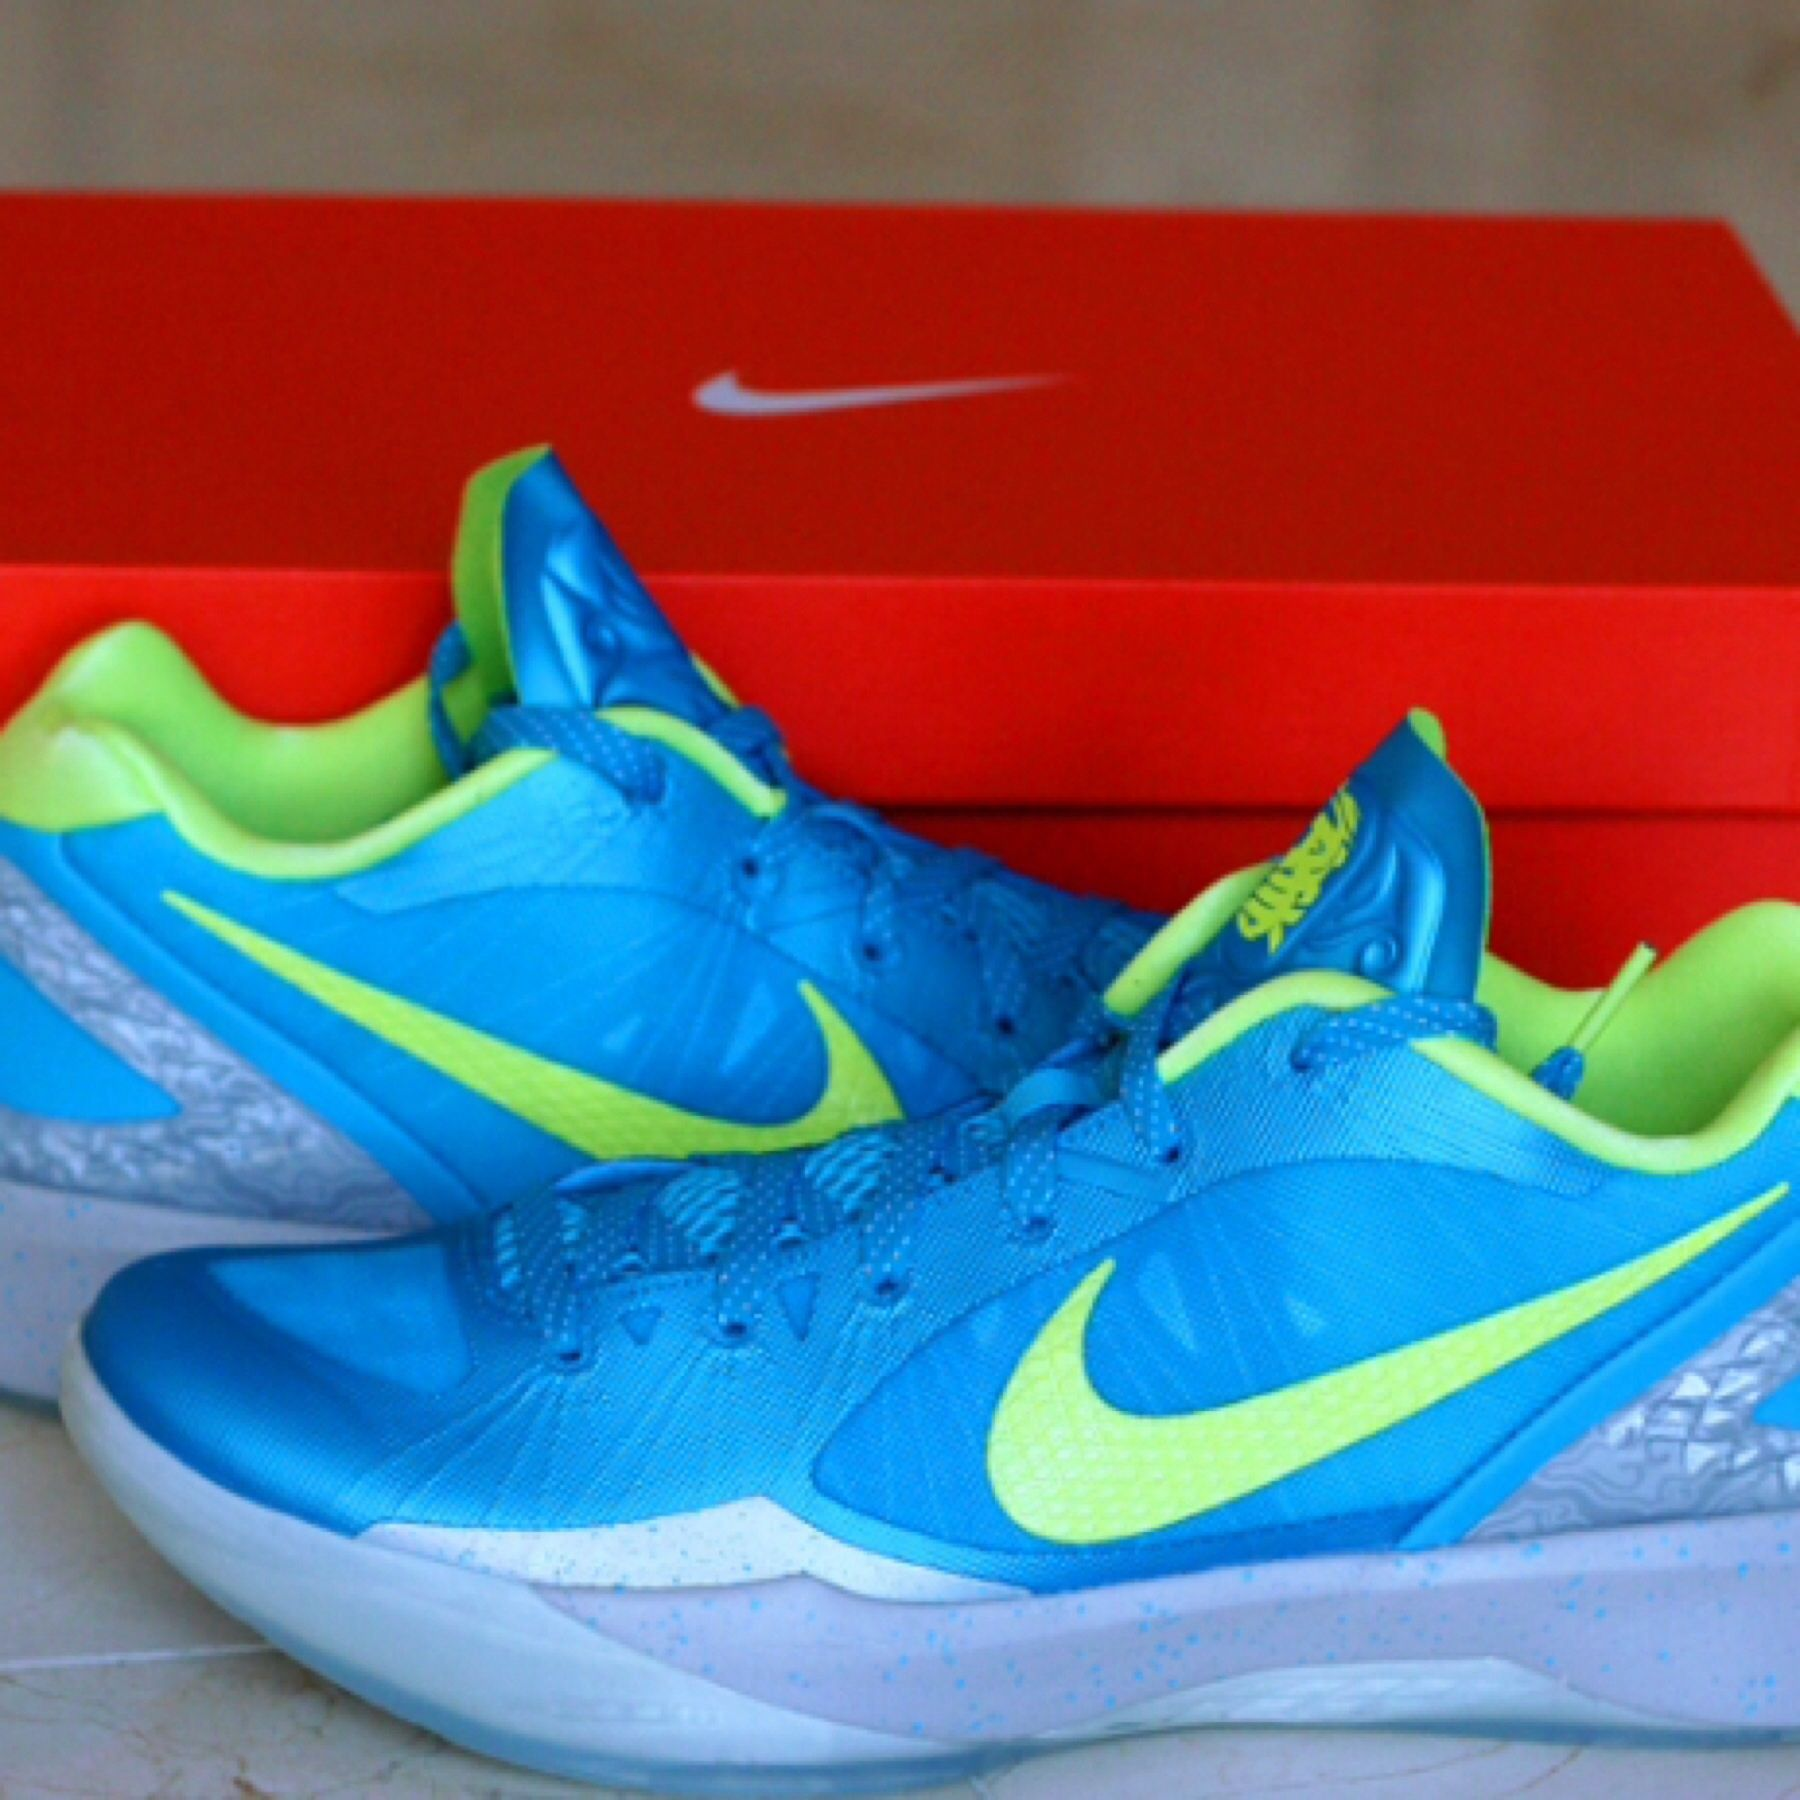 buy popular 7a5a1 d8fa8 ... discount code for nike hyperdunk low 2011 jeremy lin son of dragon  c1bab 654ba